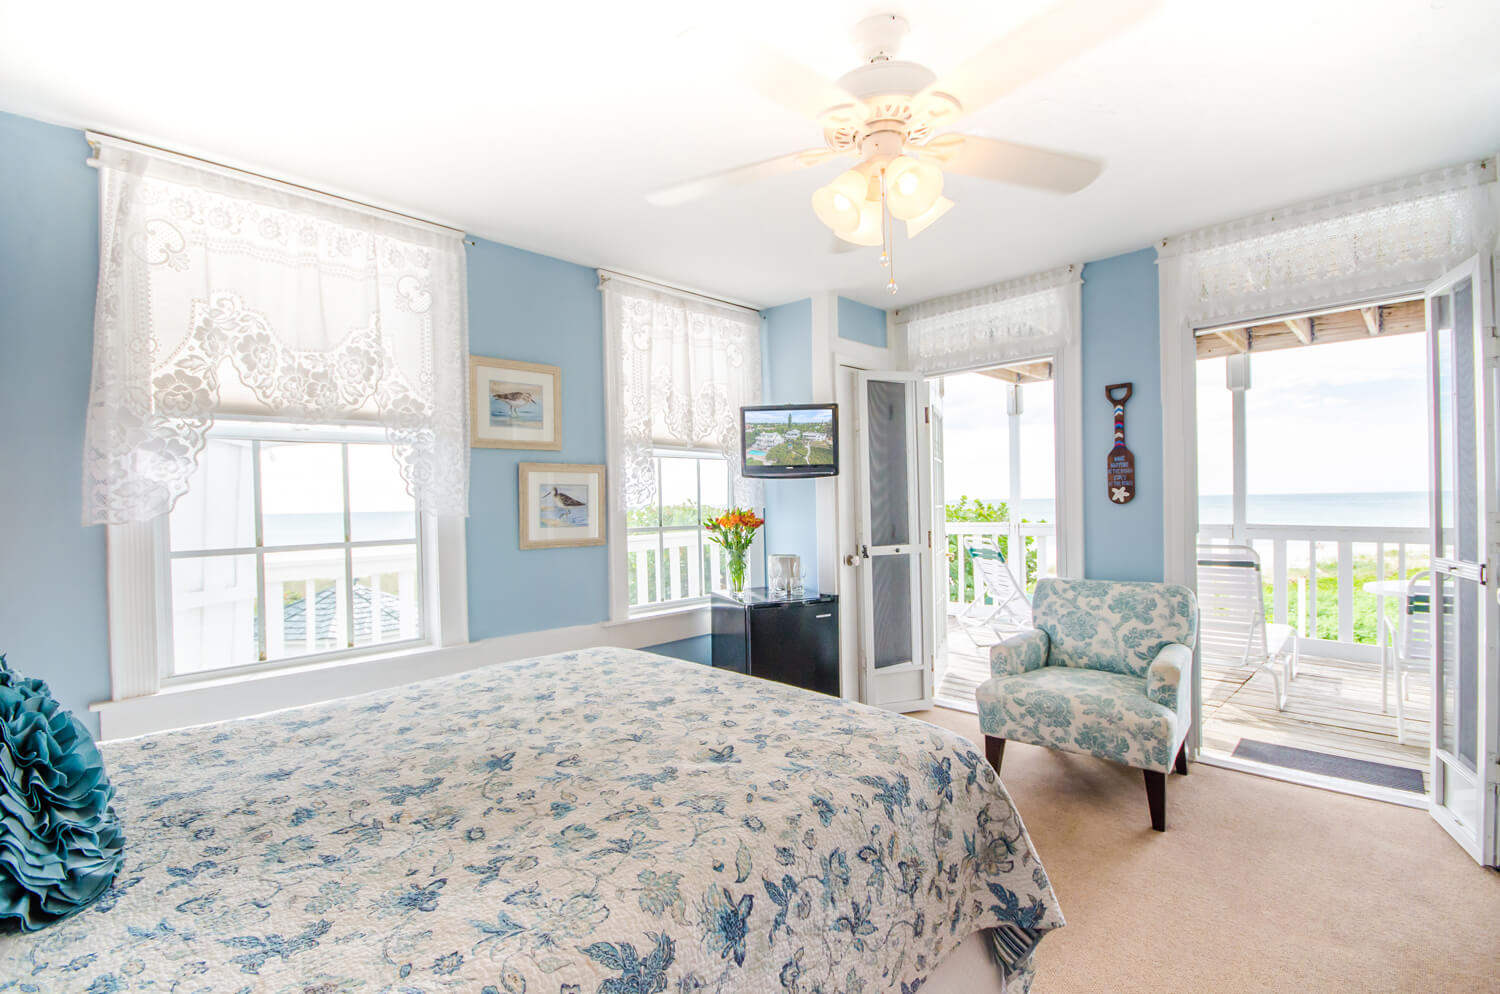 anna maria island vacation rental and bed and breakfast inn. Black Bedroom Furniture Sets. Home Design Ideas